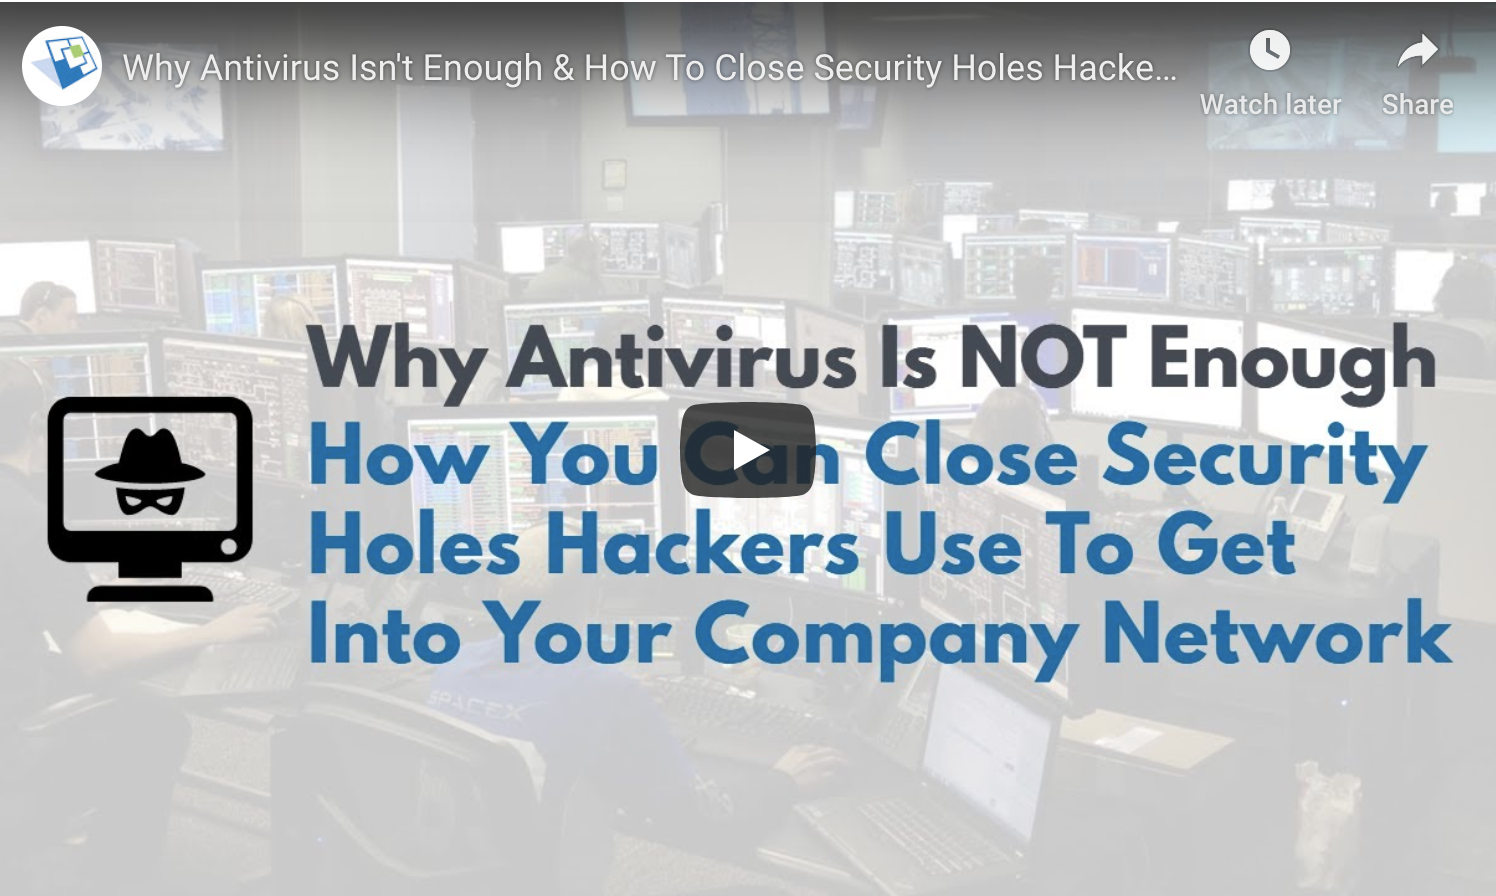 why-antivirus-isnt-enough-and-how-you-can-close-security